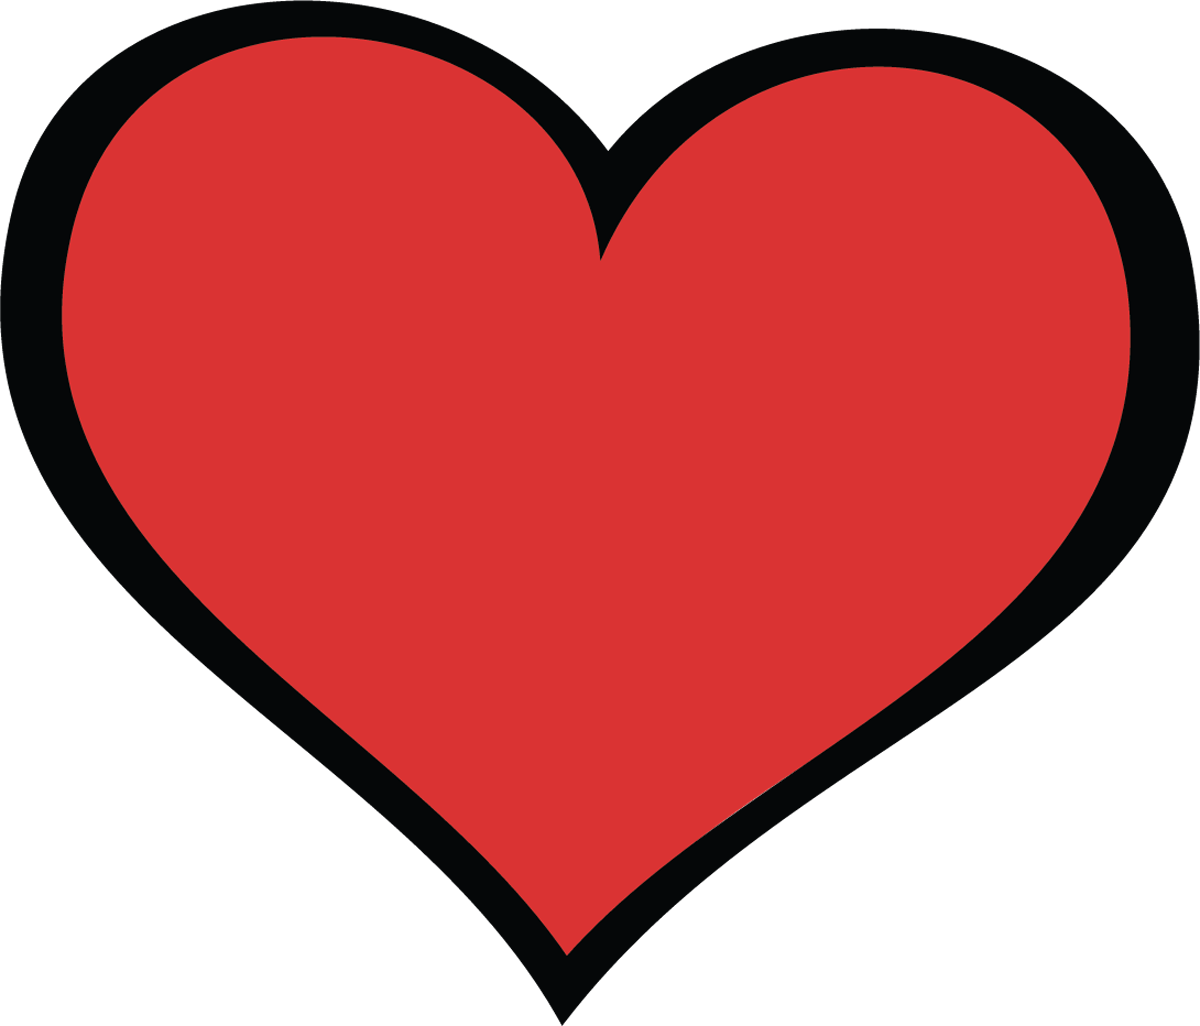 Animated Heart Clipart - ClipArt Best